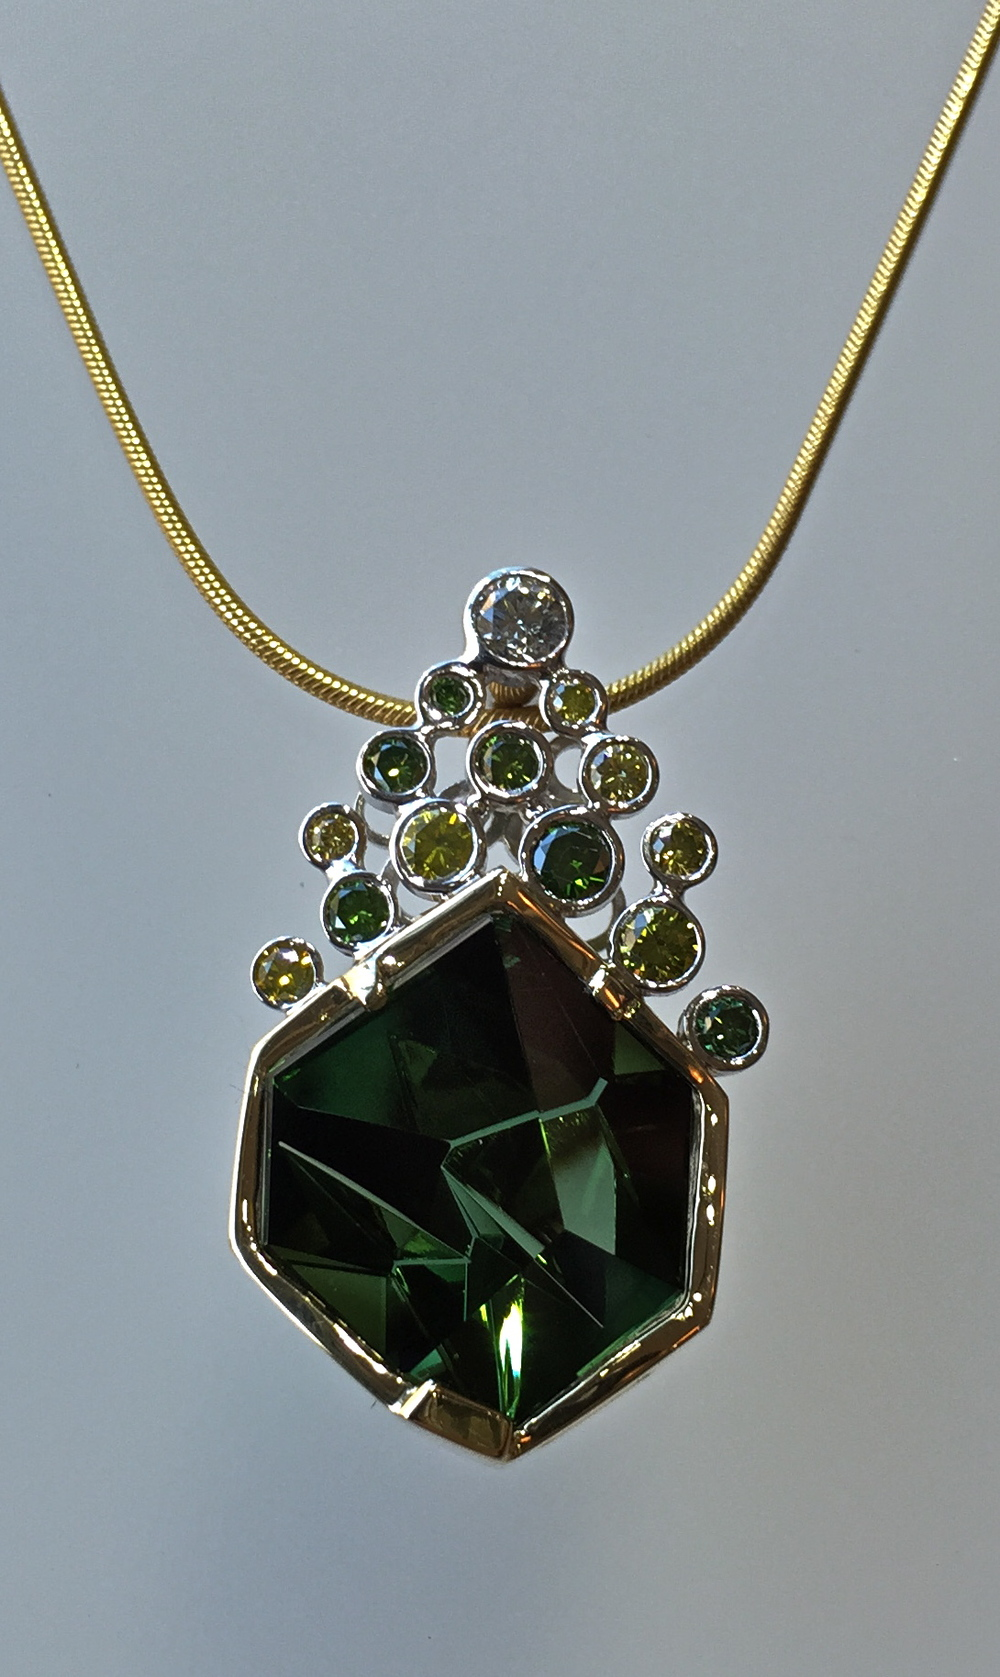 unique-green-tourmaline-munsteiner-stone-green-diamond-white-diamond-bezel-set-accents-yellow-gold-pendant-craft-revival-jewelry-store-grand-rapids